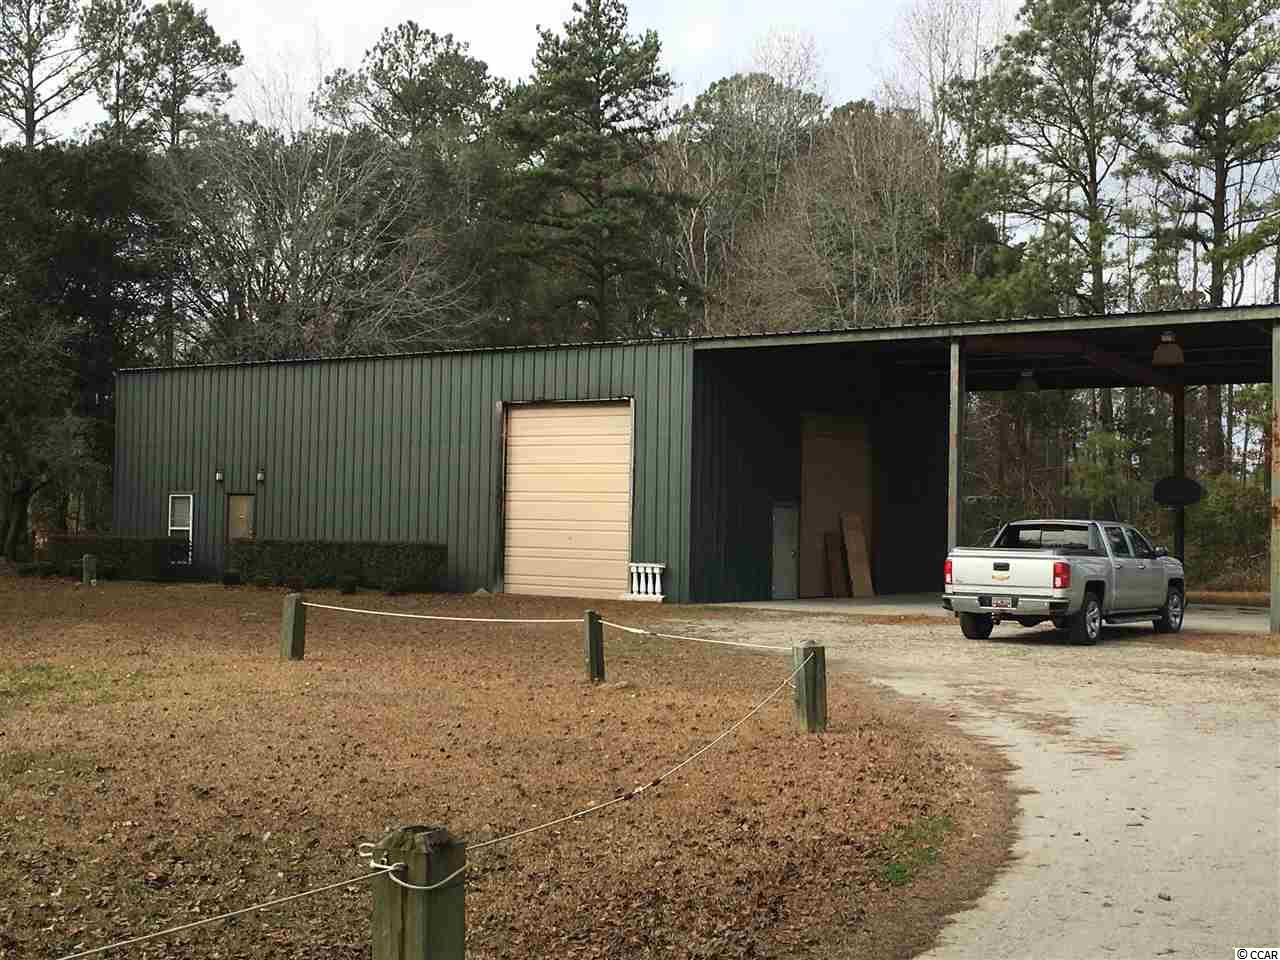 This property Has a 4000 sq ft warehouse on site. approximately 1280 heated/cooled with 4 offices, kitchen full bath and reception area; 1200 sq ft of warehouse with 3 14' roll up doors 20' ceilings and 1520 covered area with concrete floor. Water: well sewer: septic. Direct access to the Waccamaw river. Did not flood. Approximately 4 miles from downtown Conway. Approximately 10. 5 miles from the intersection of Carolina Forest Blvd & Hwy 501.  All measurement are approximate and buyer is responsible for verification.